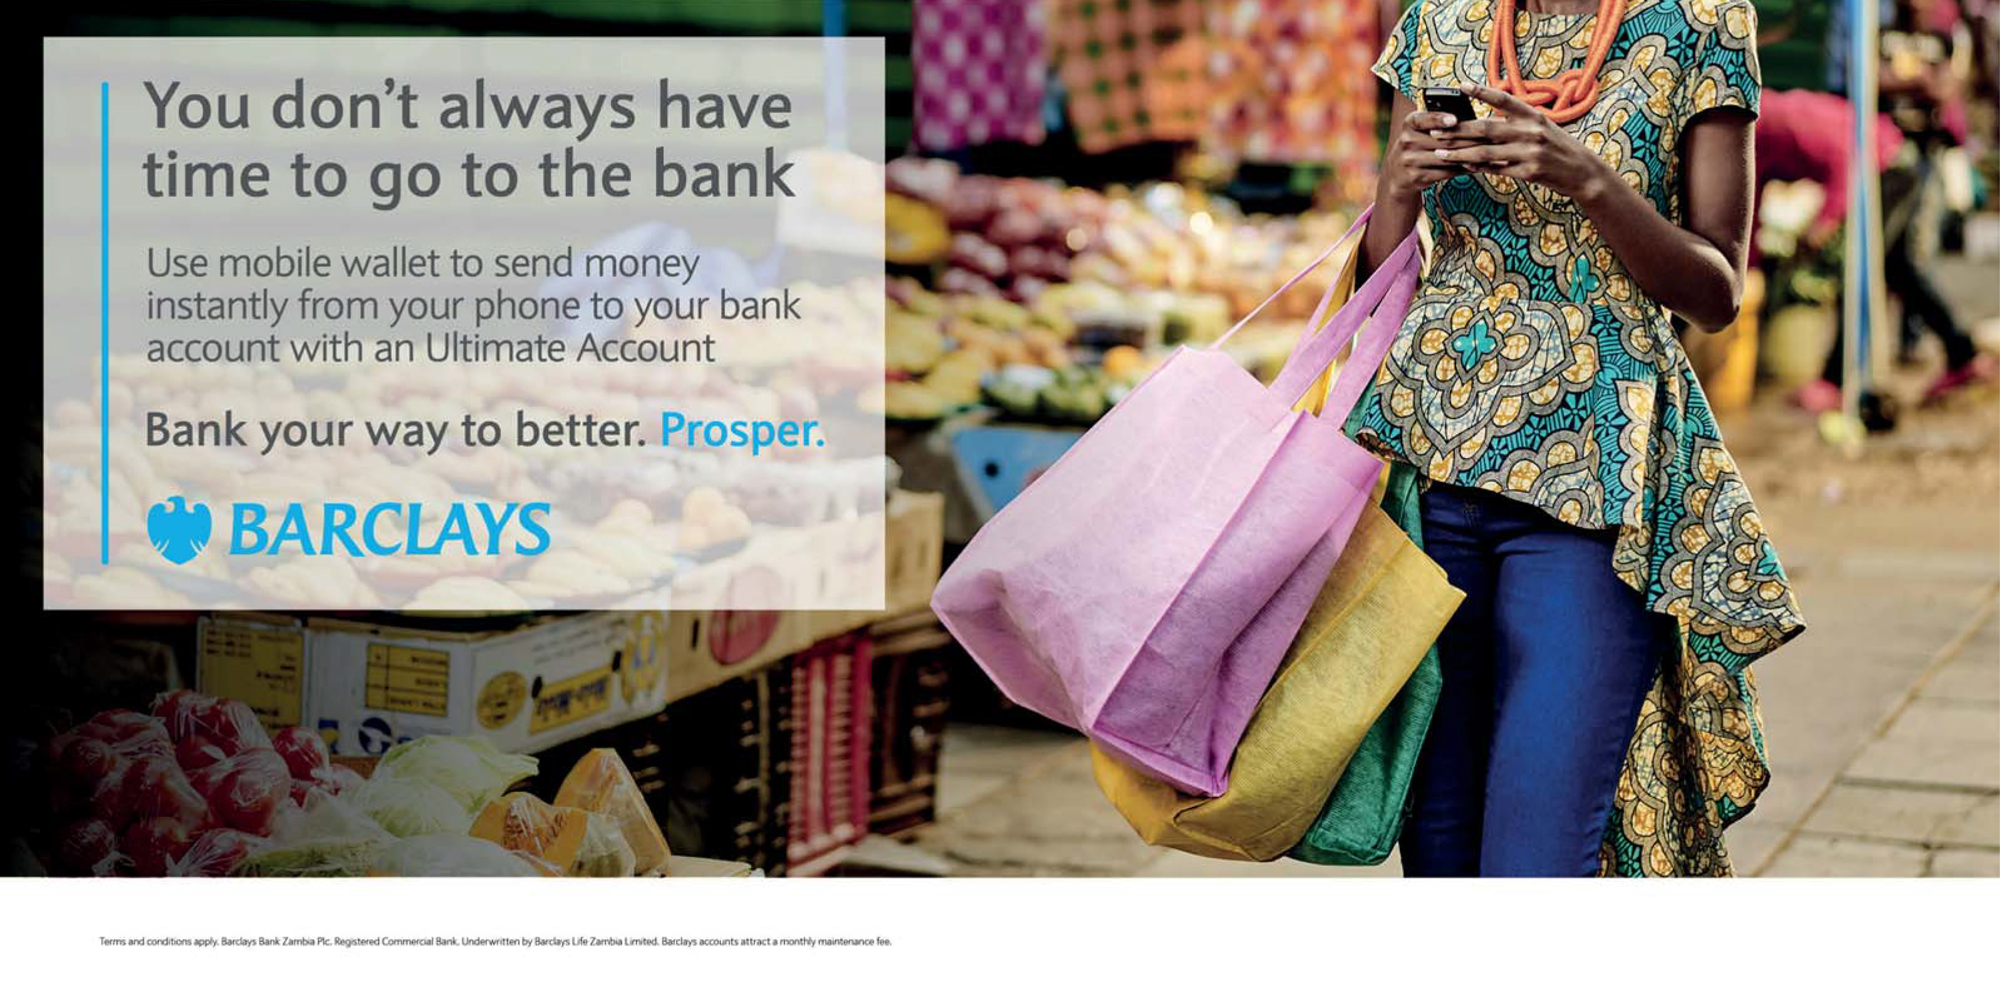 Barclays Personal Banking Campaign Toolkit 26 APRIL-45.jpg